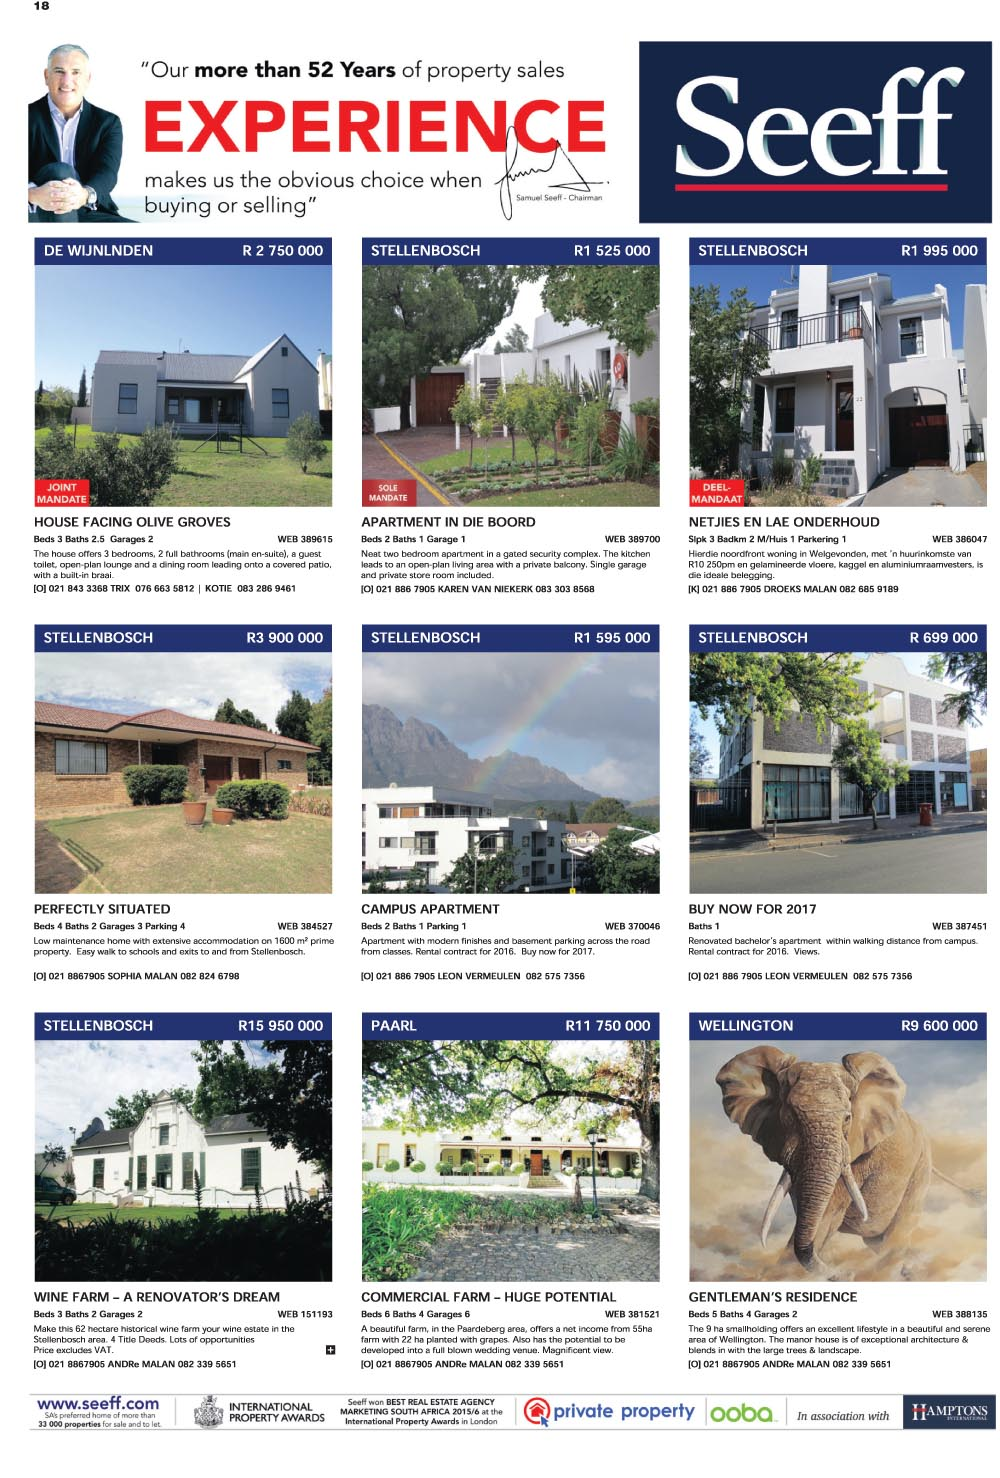 You are browsing images from the article: Property Selection 18 May 2016